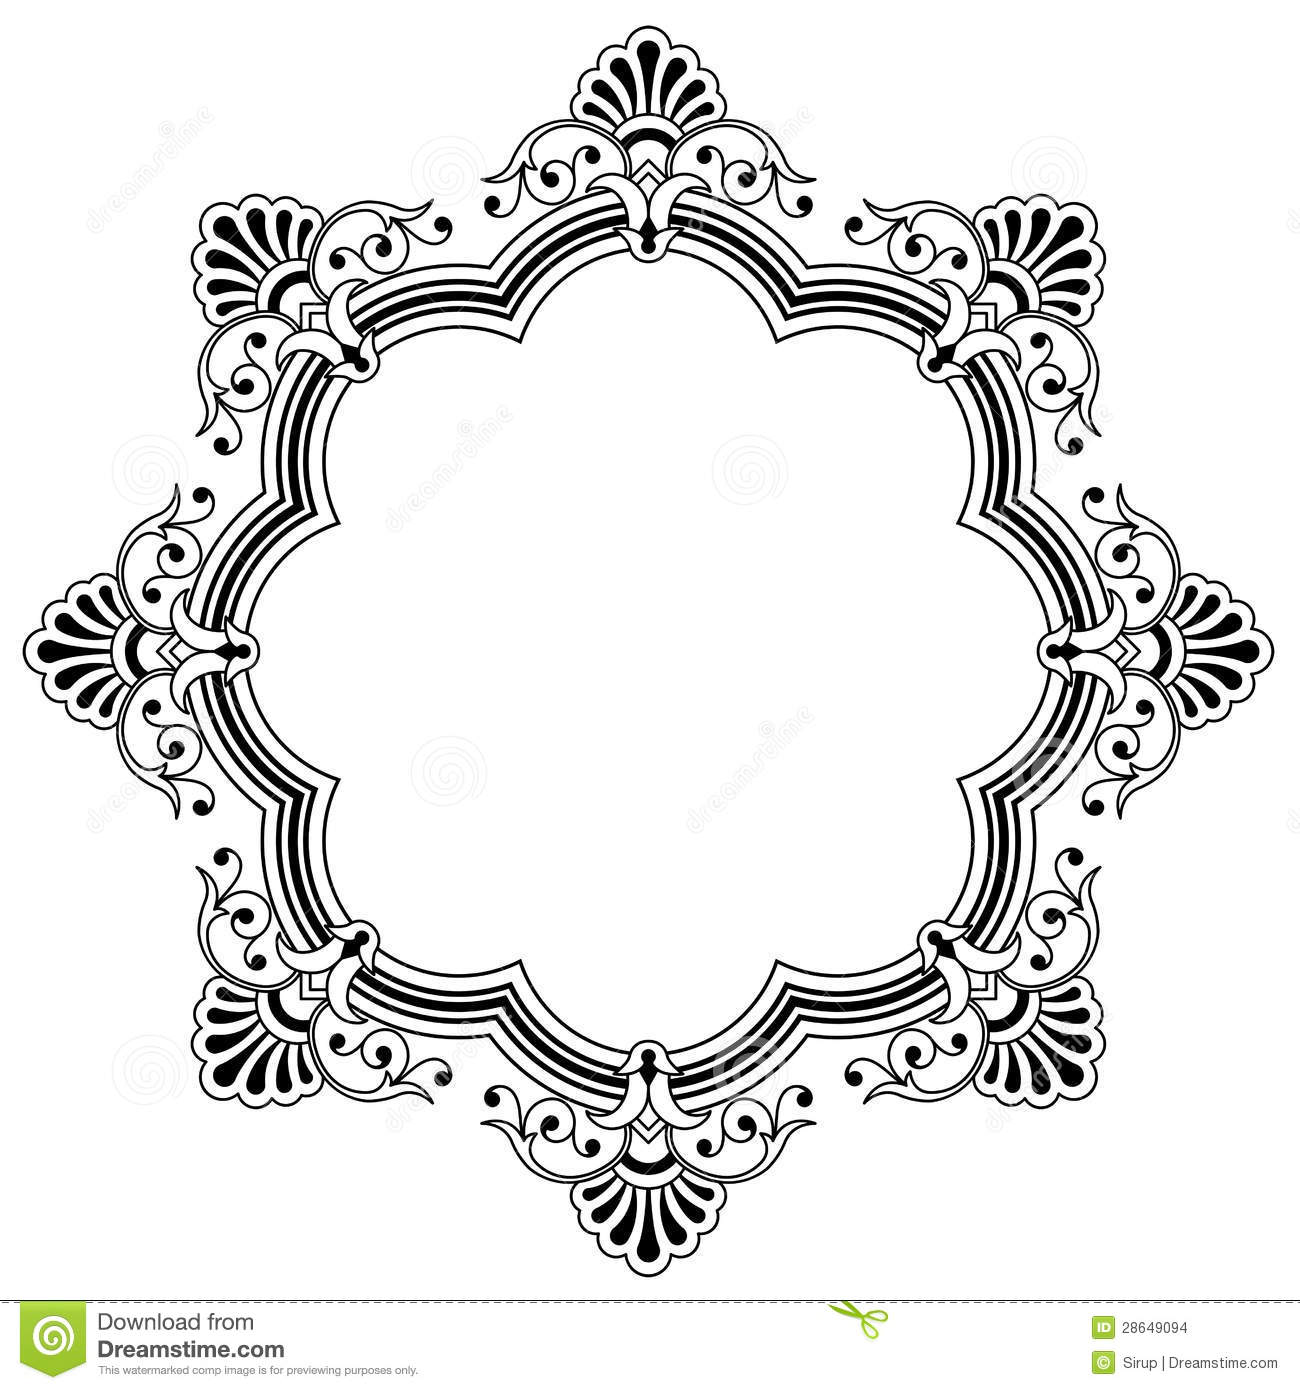 Floral Calligraphic Border Stock Vector Illustration Of Bold